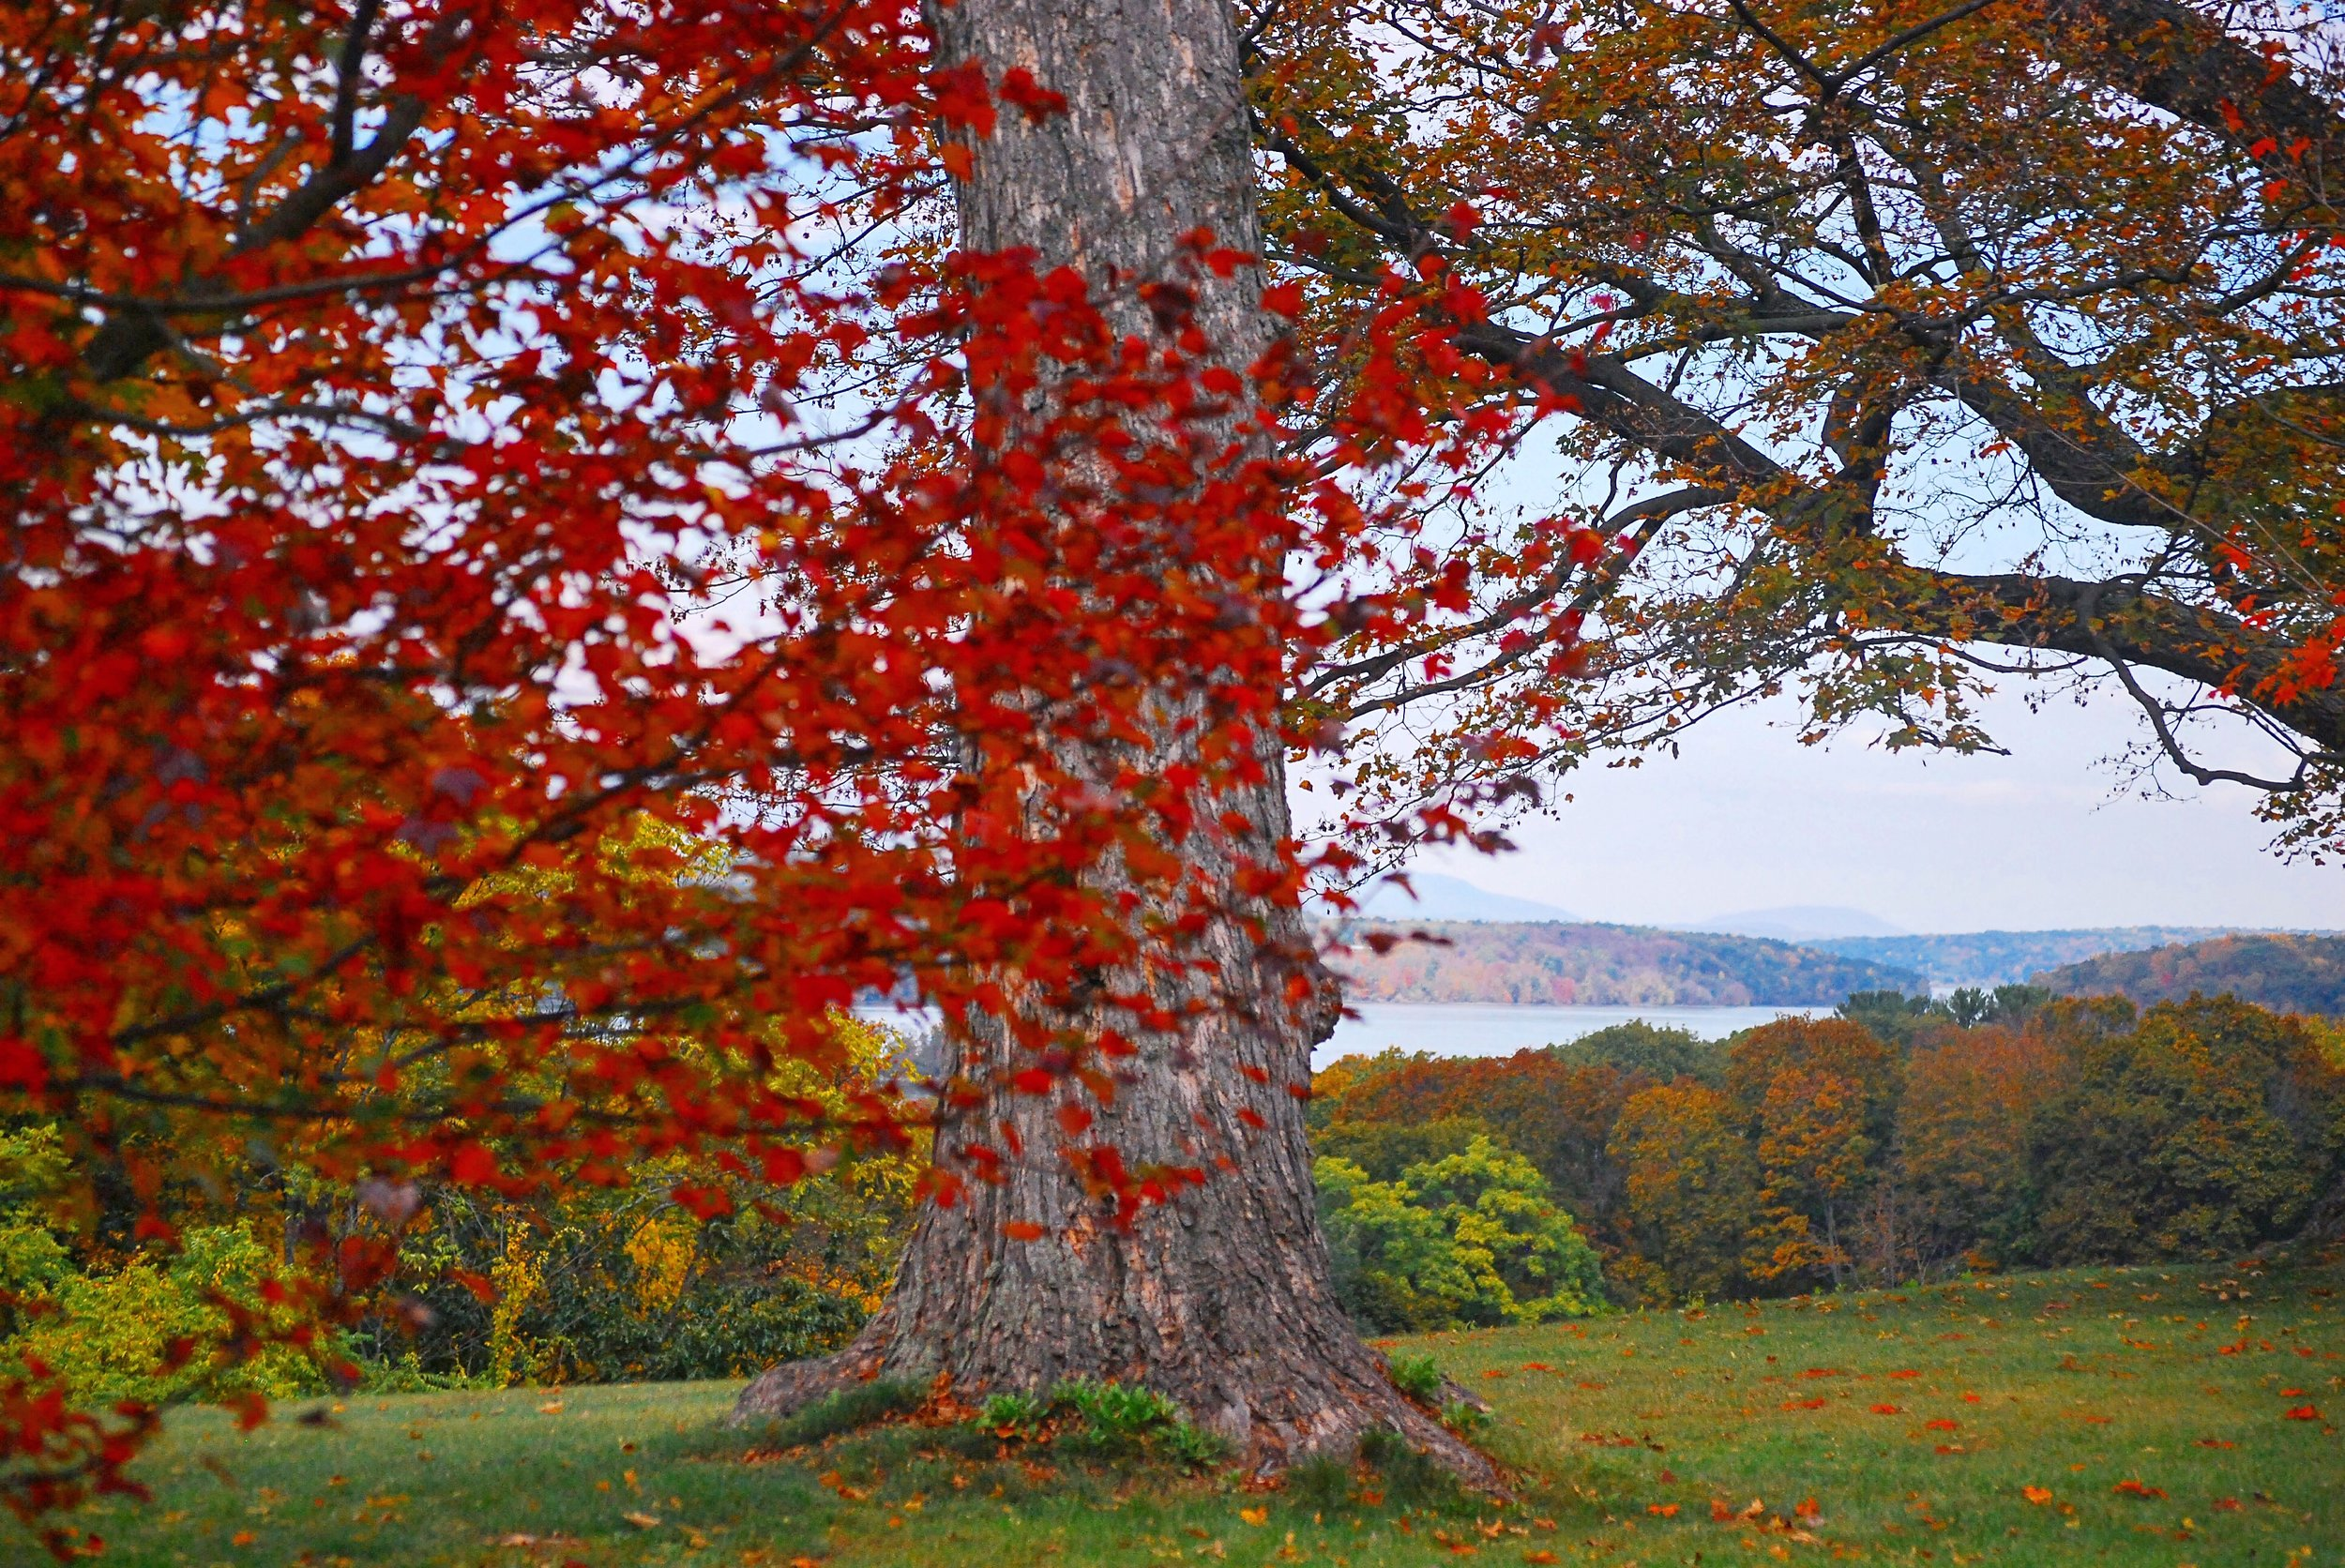 Red Tree in Hyde Park, NY overlooking the Hudson River - October, 25th 2017.